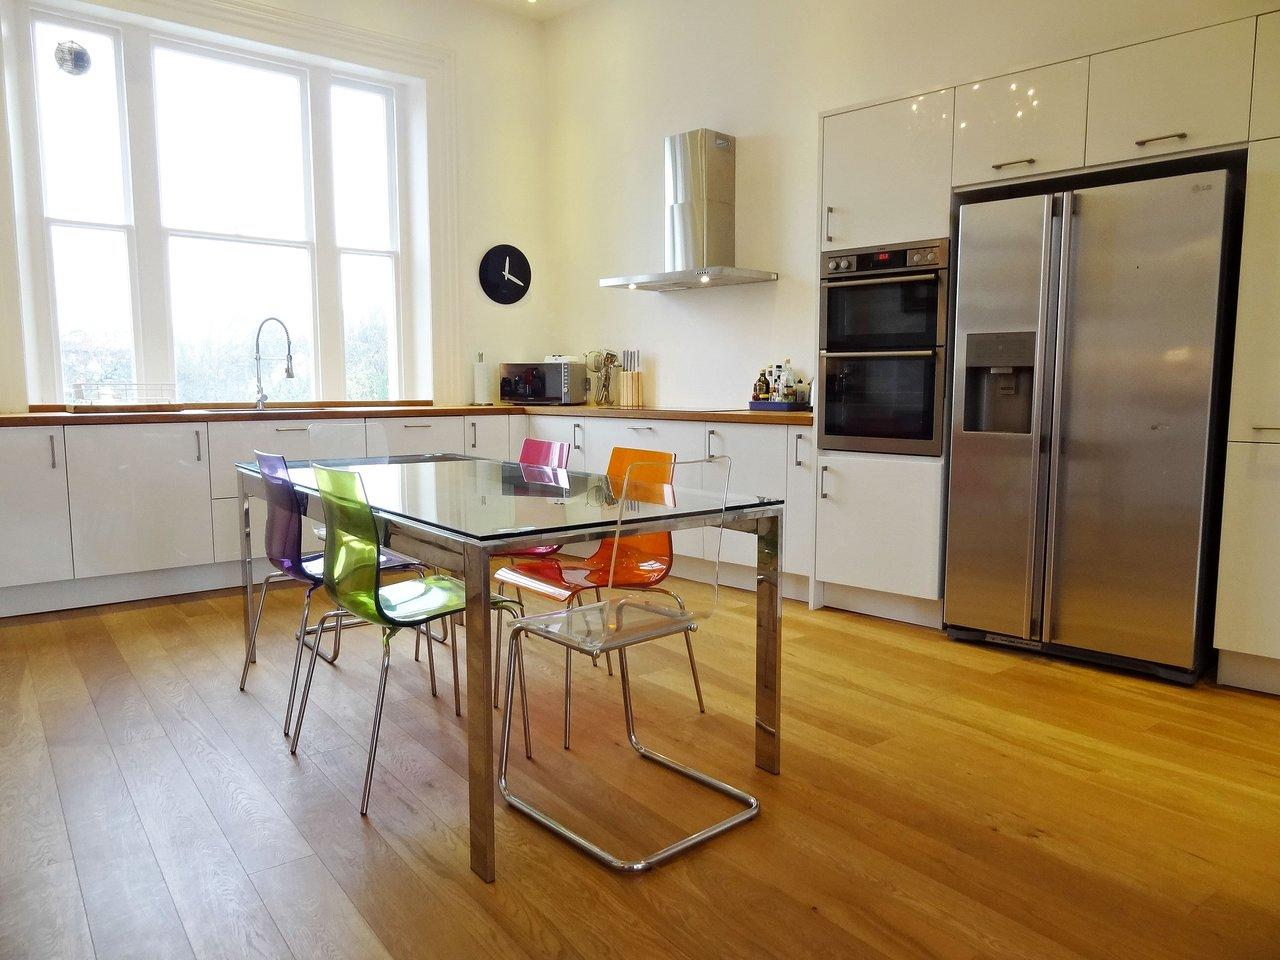 The Grand Seafront Apartment, Brighton & Hove Images - 16